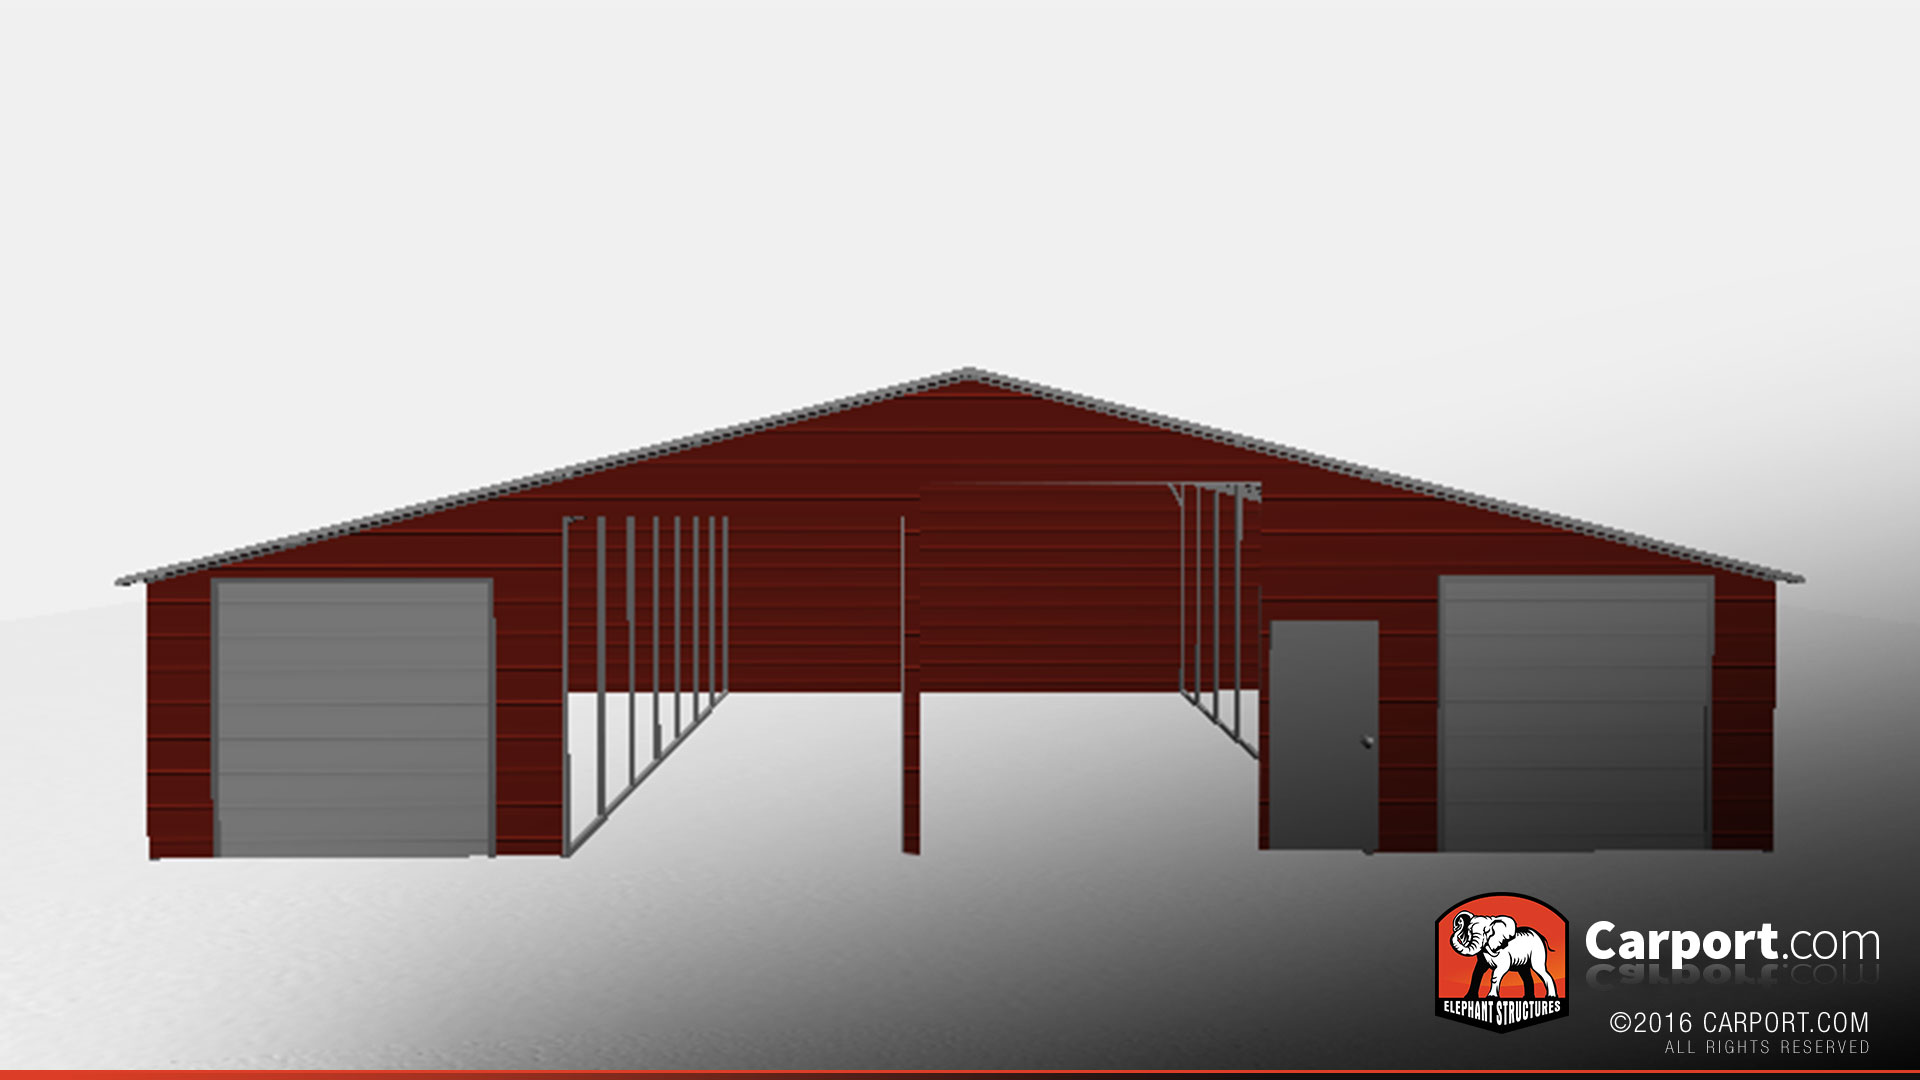 durable steel structure with lean-to's and open base